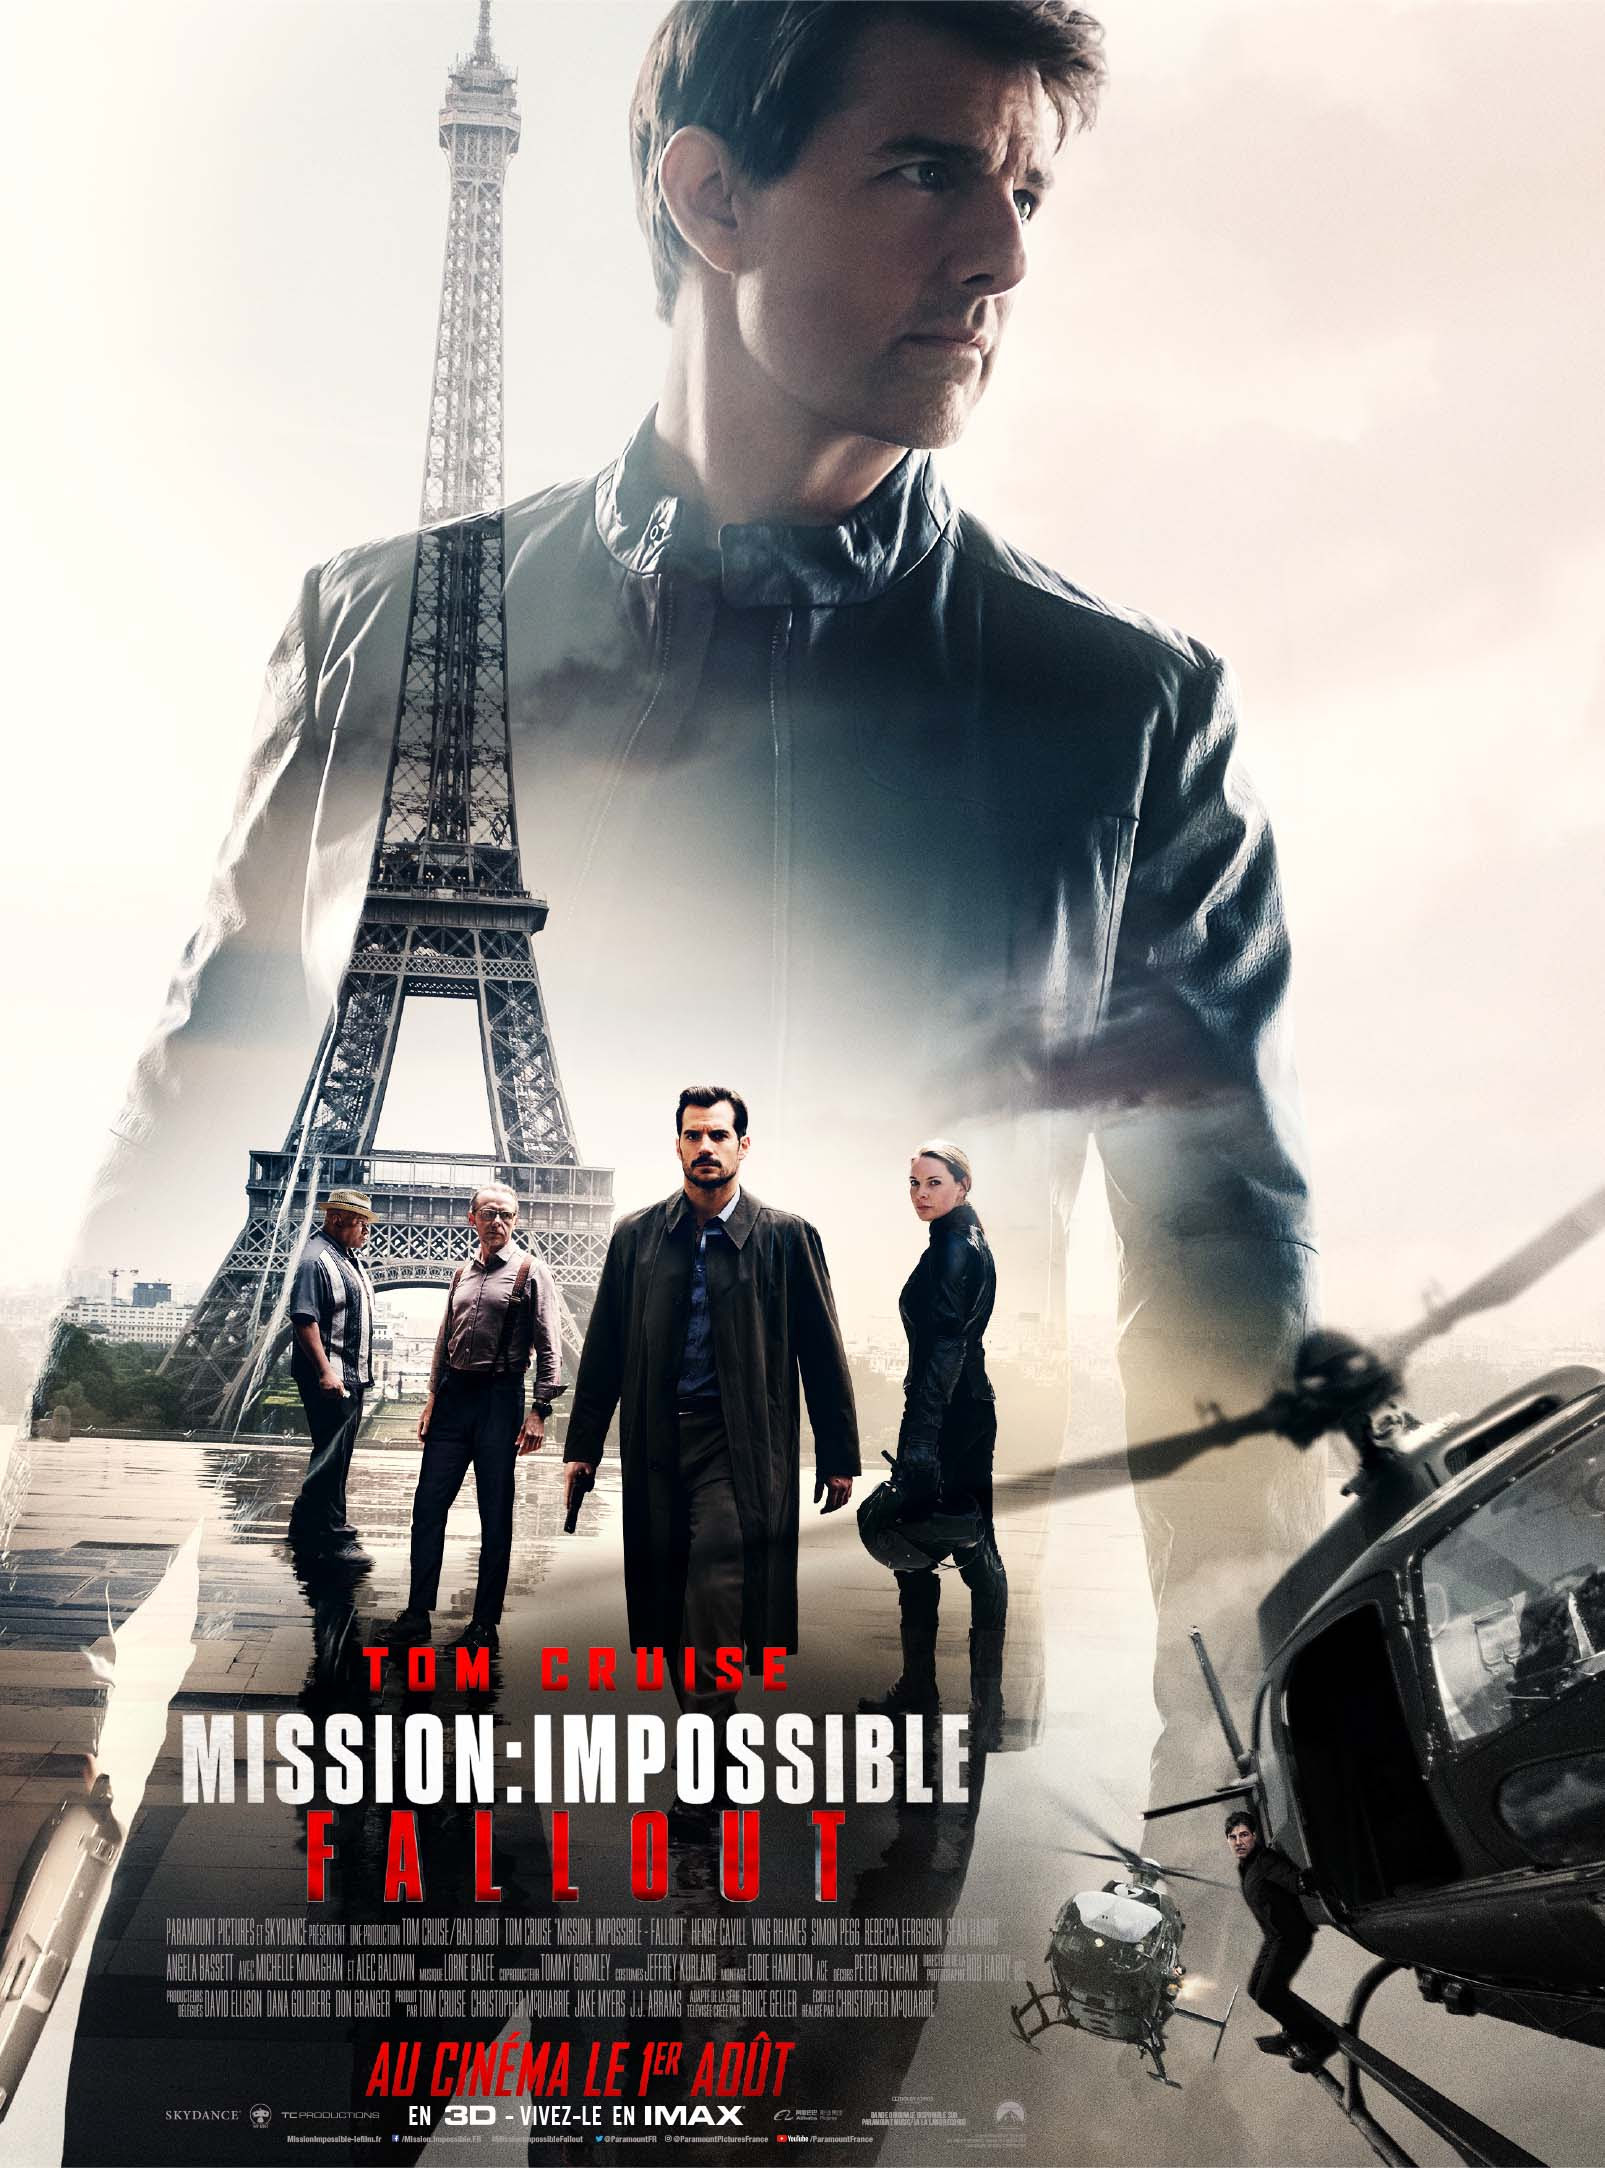 https://www.ecranlarge.com/uploads/image/001/021/mission-impossible-fallout-affiche-tom-cruise-henry-cavill-1021623.jpg